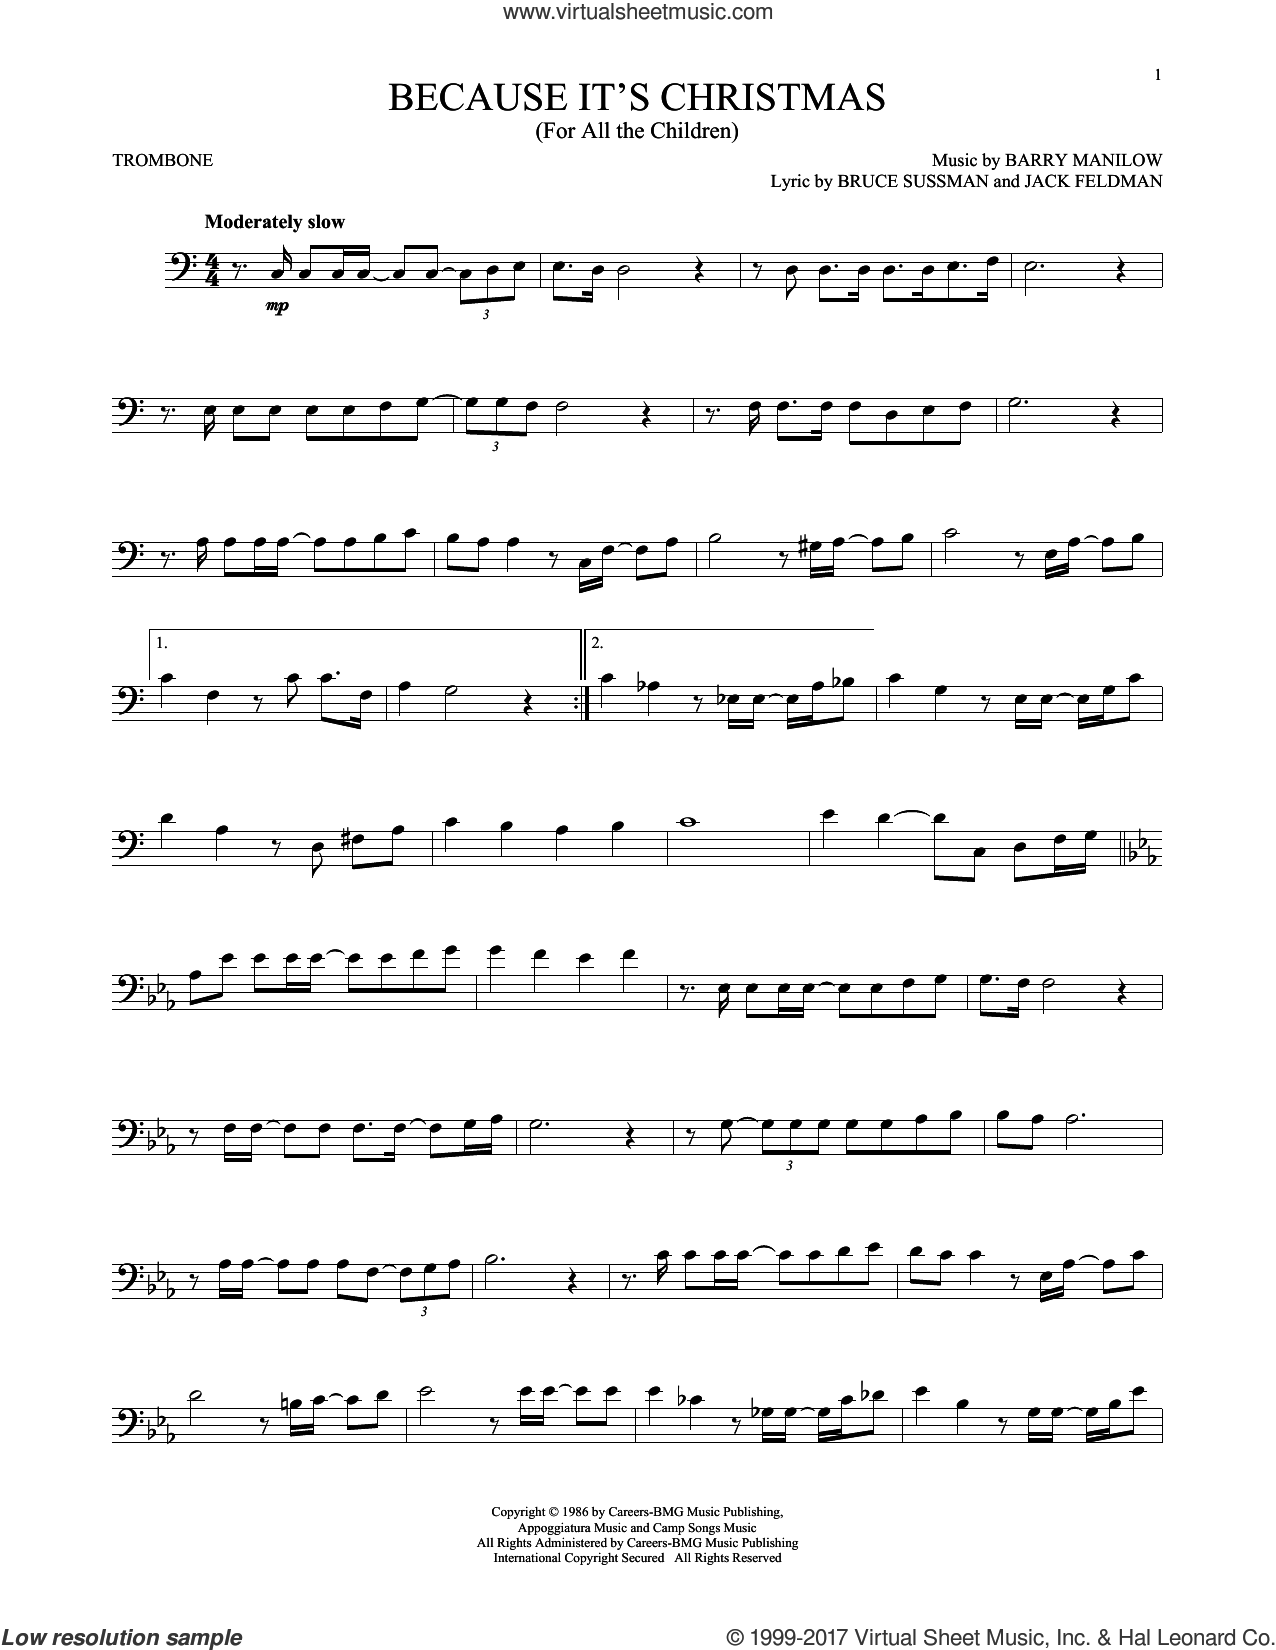 Because It's Christmas (For All The Children) sheet music for trombone solo by Barry Manilow, Bruce Sussman and Jack Feldman, intermediate skill level